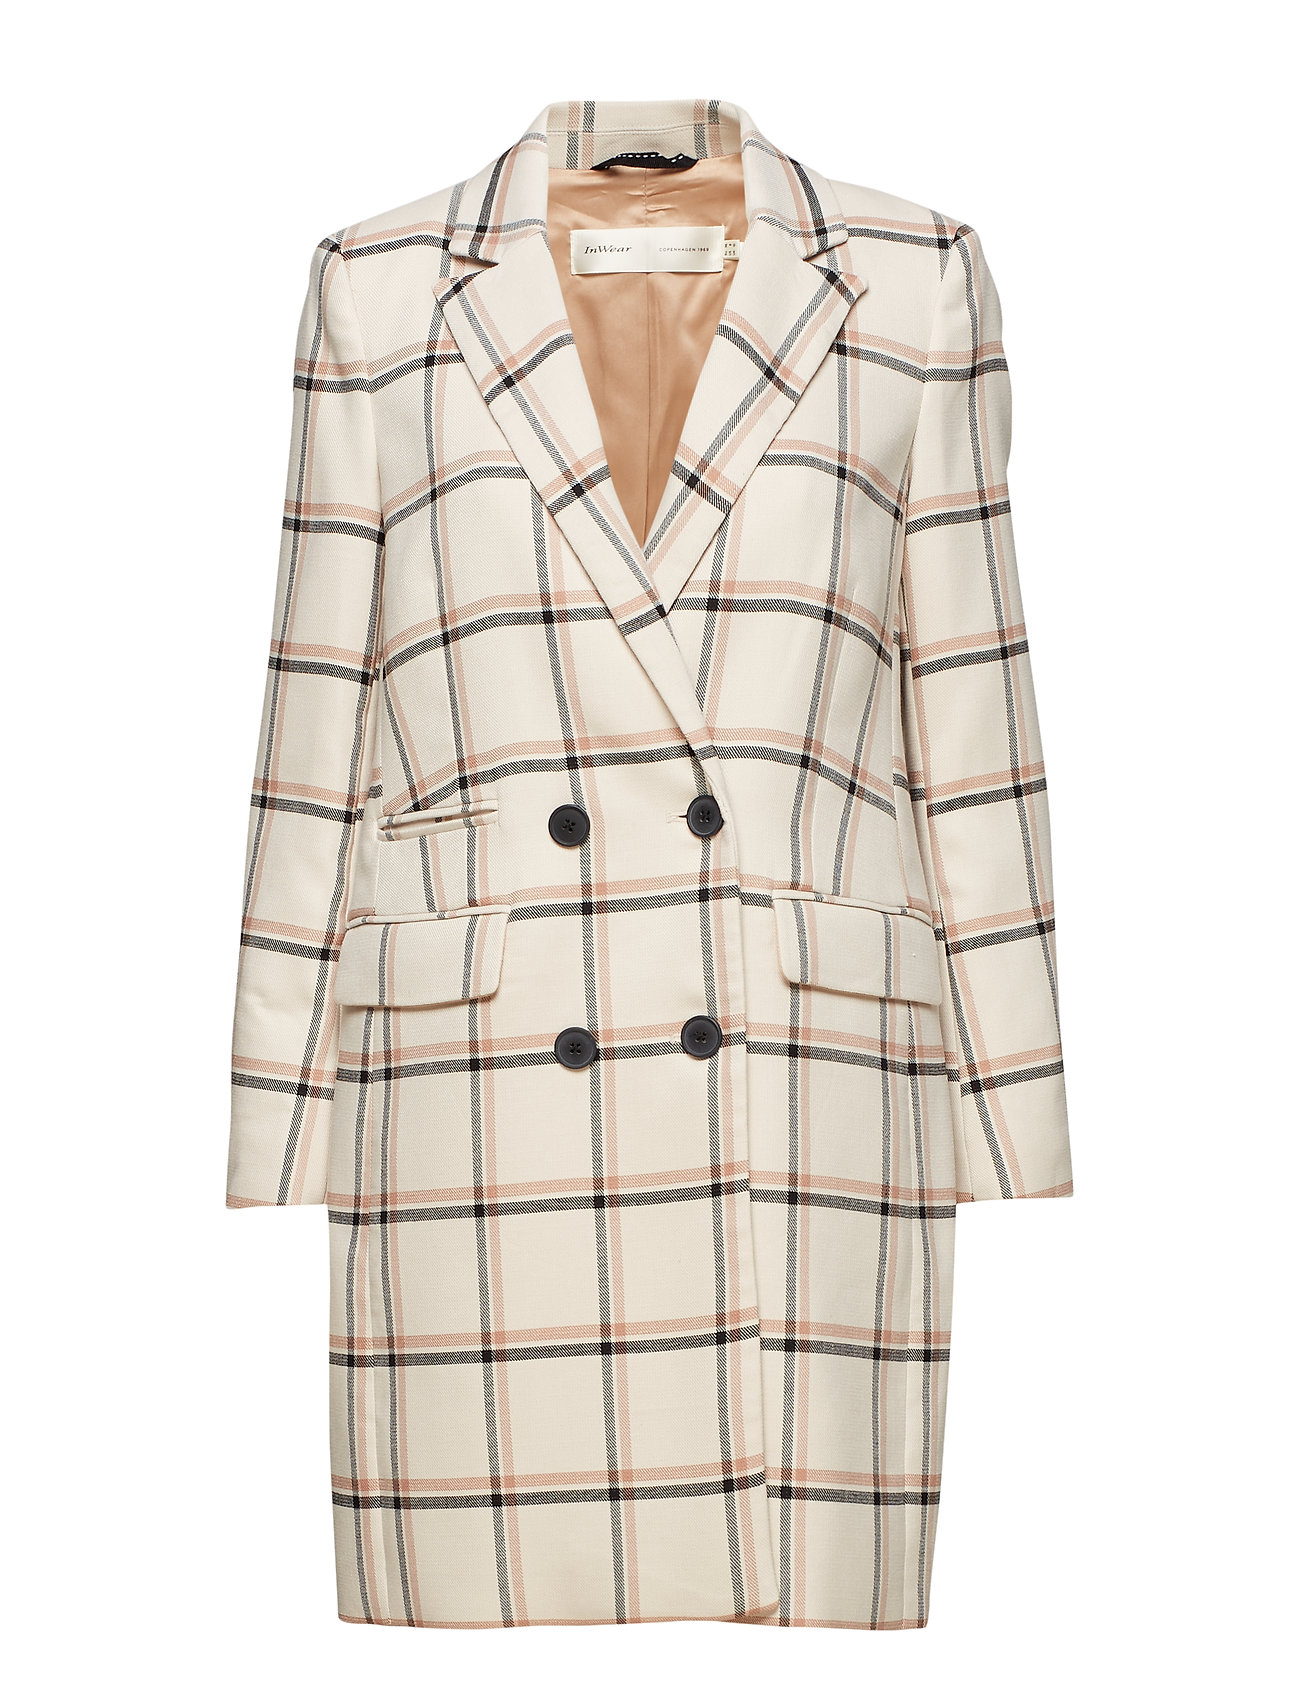 Urbi Coat (Large Check) (230 €) - InWear -  53a5431de4